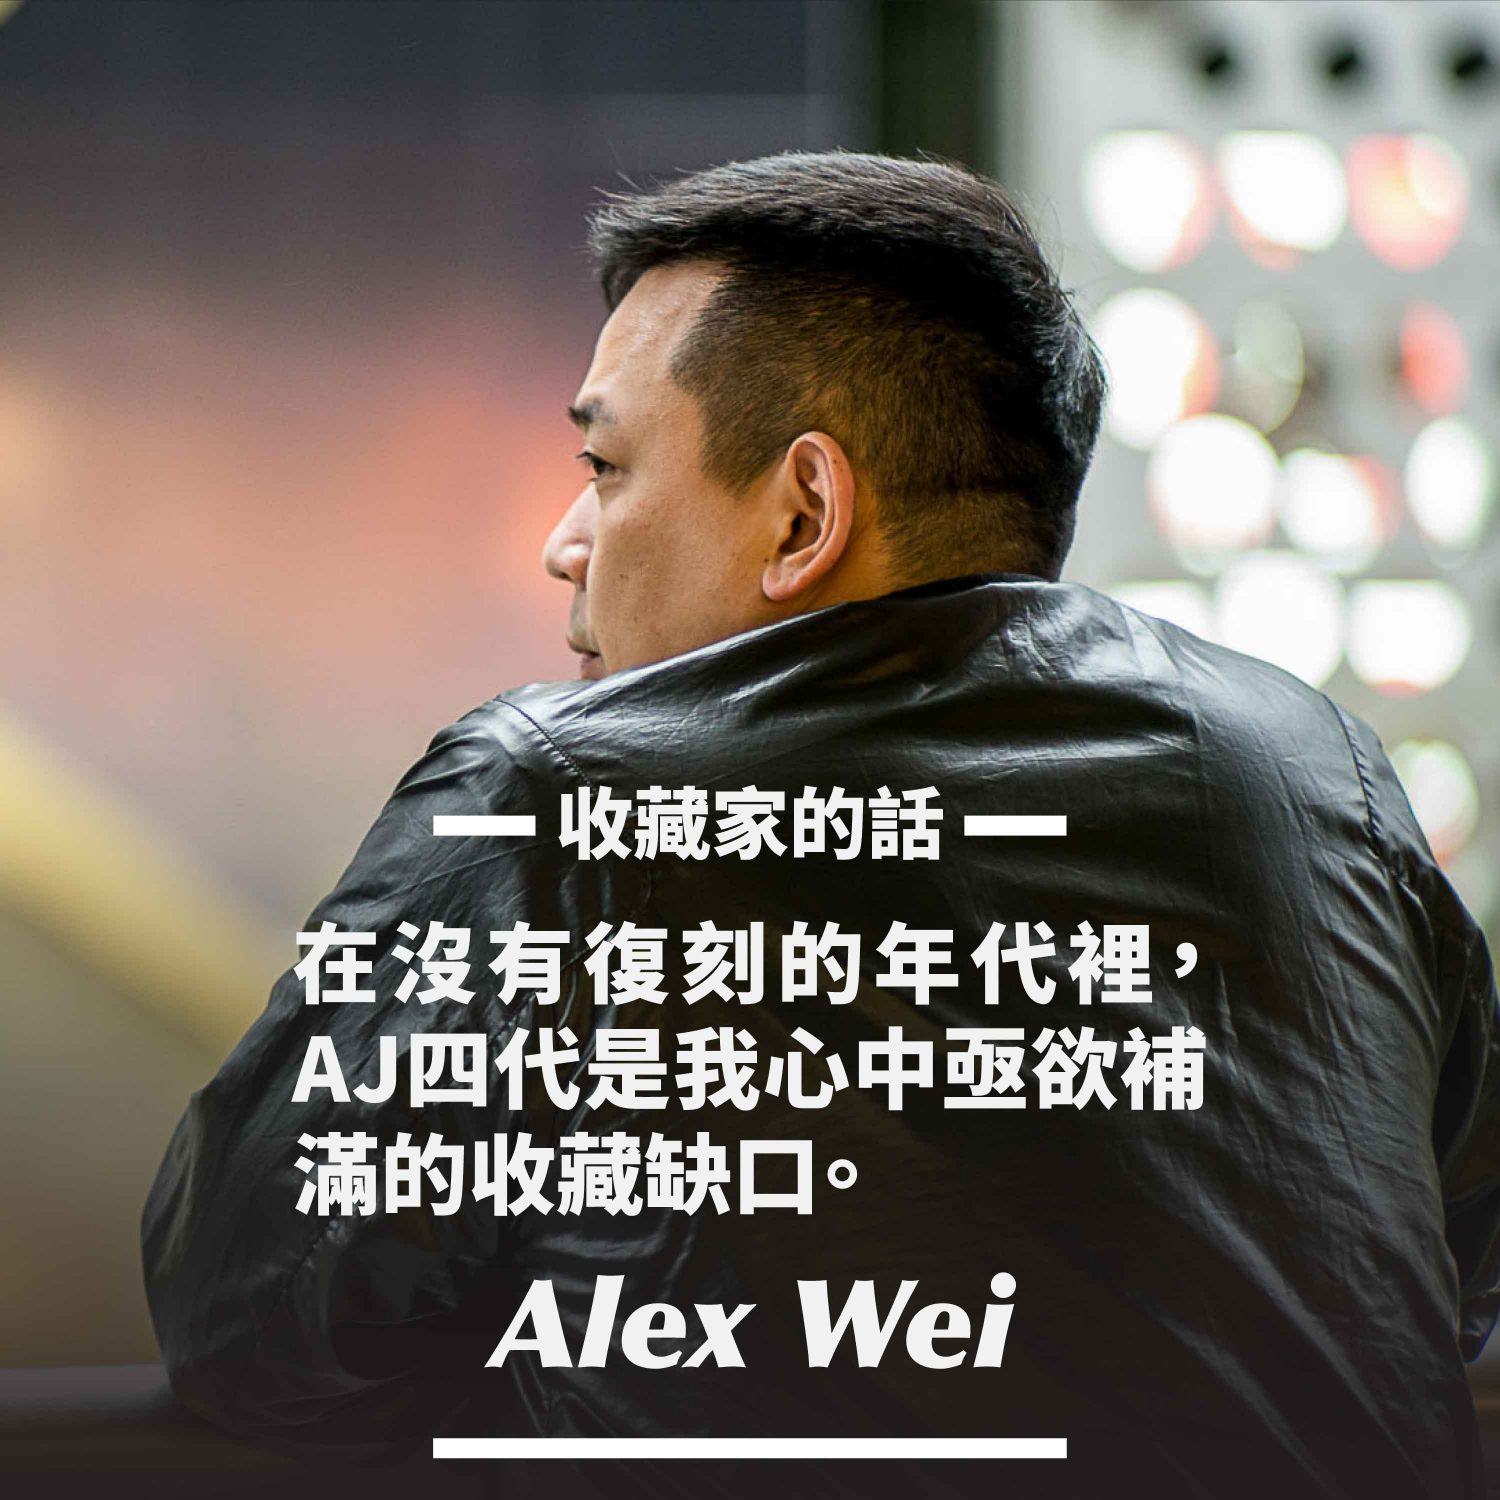 air-jordan-4-collector-alex-wei-quote